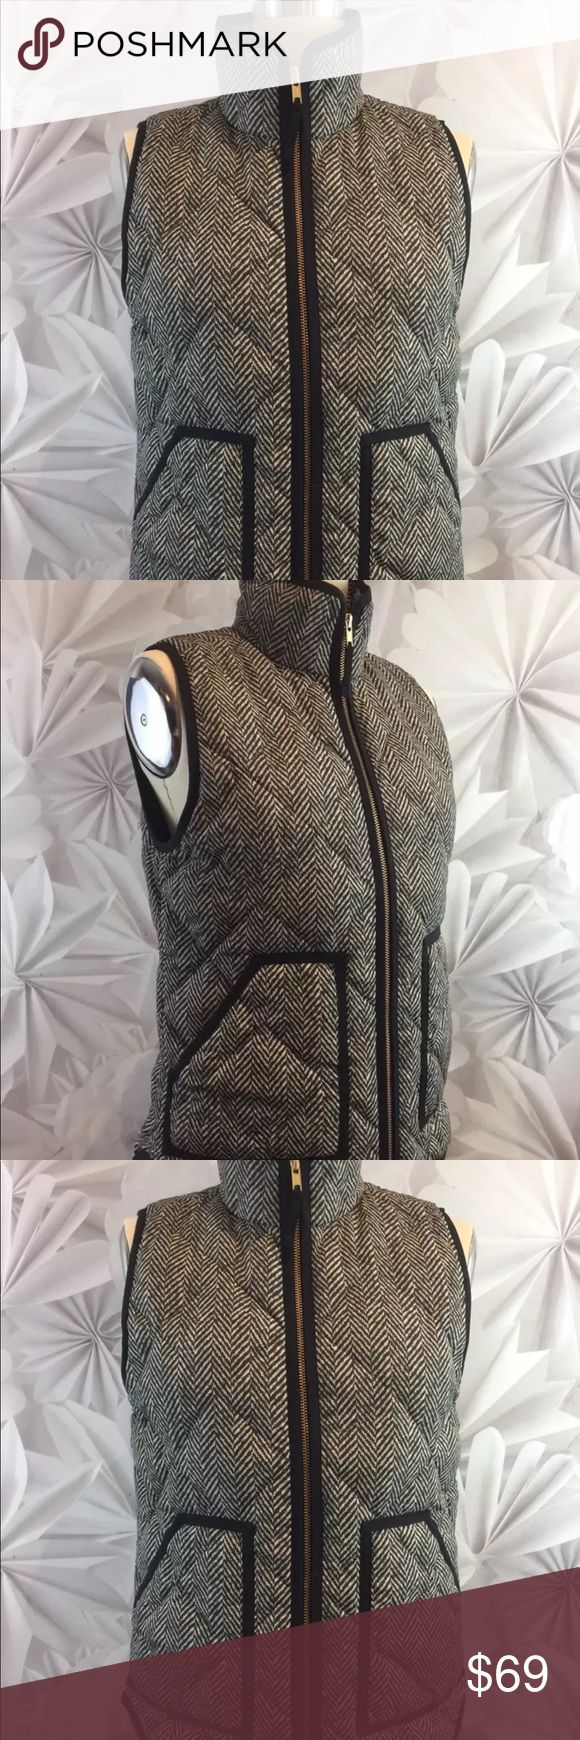 "J Crew Herringbone Down Vest Puffer Full Zip J Crew Herringbone Down Vest Puffer Womens Gray/Black Poly Sz XS Full Zip   Bust: 36 1/2"" Length: 25 1/4"" Sleeves: sleeveless    This garment is in excellent used condition. There are no stains, spots, pills or signs of wear.   This item comes from a smoke free pet free environment. Please follow us on our store and never miss another sale!  INCLUDES SPECIAL BONUS GIFT!!! J. Crew Jackets & Coats Puffers"